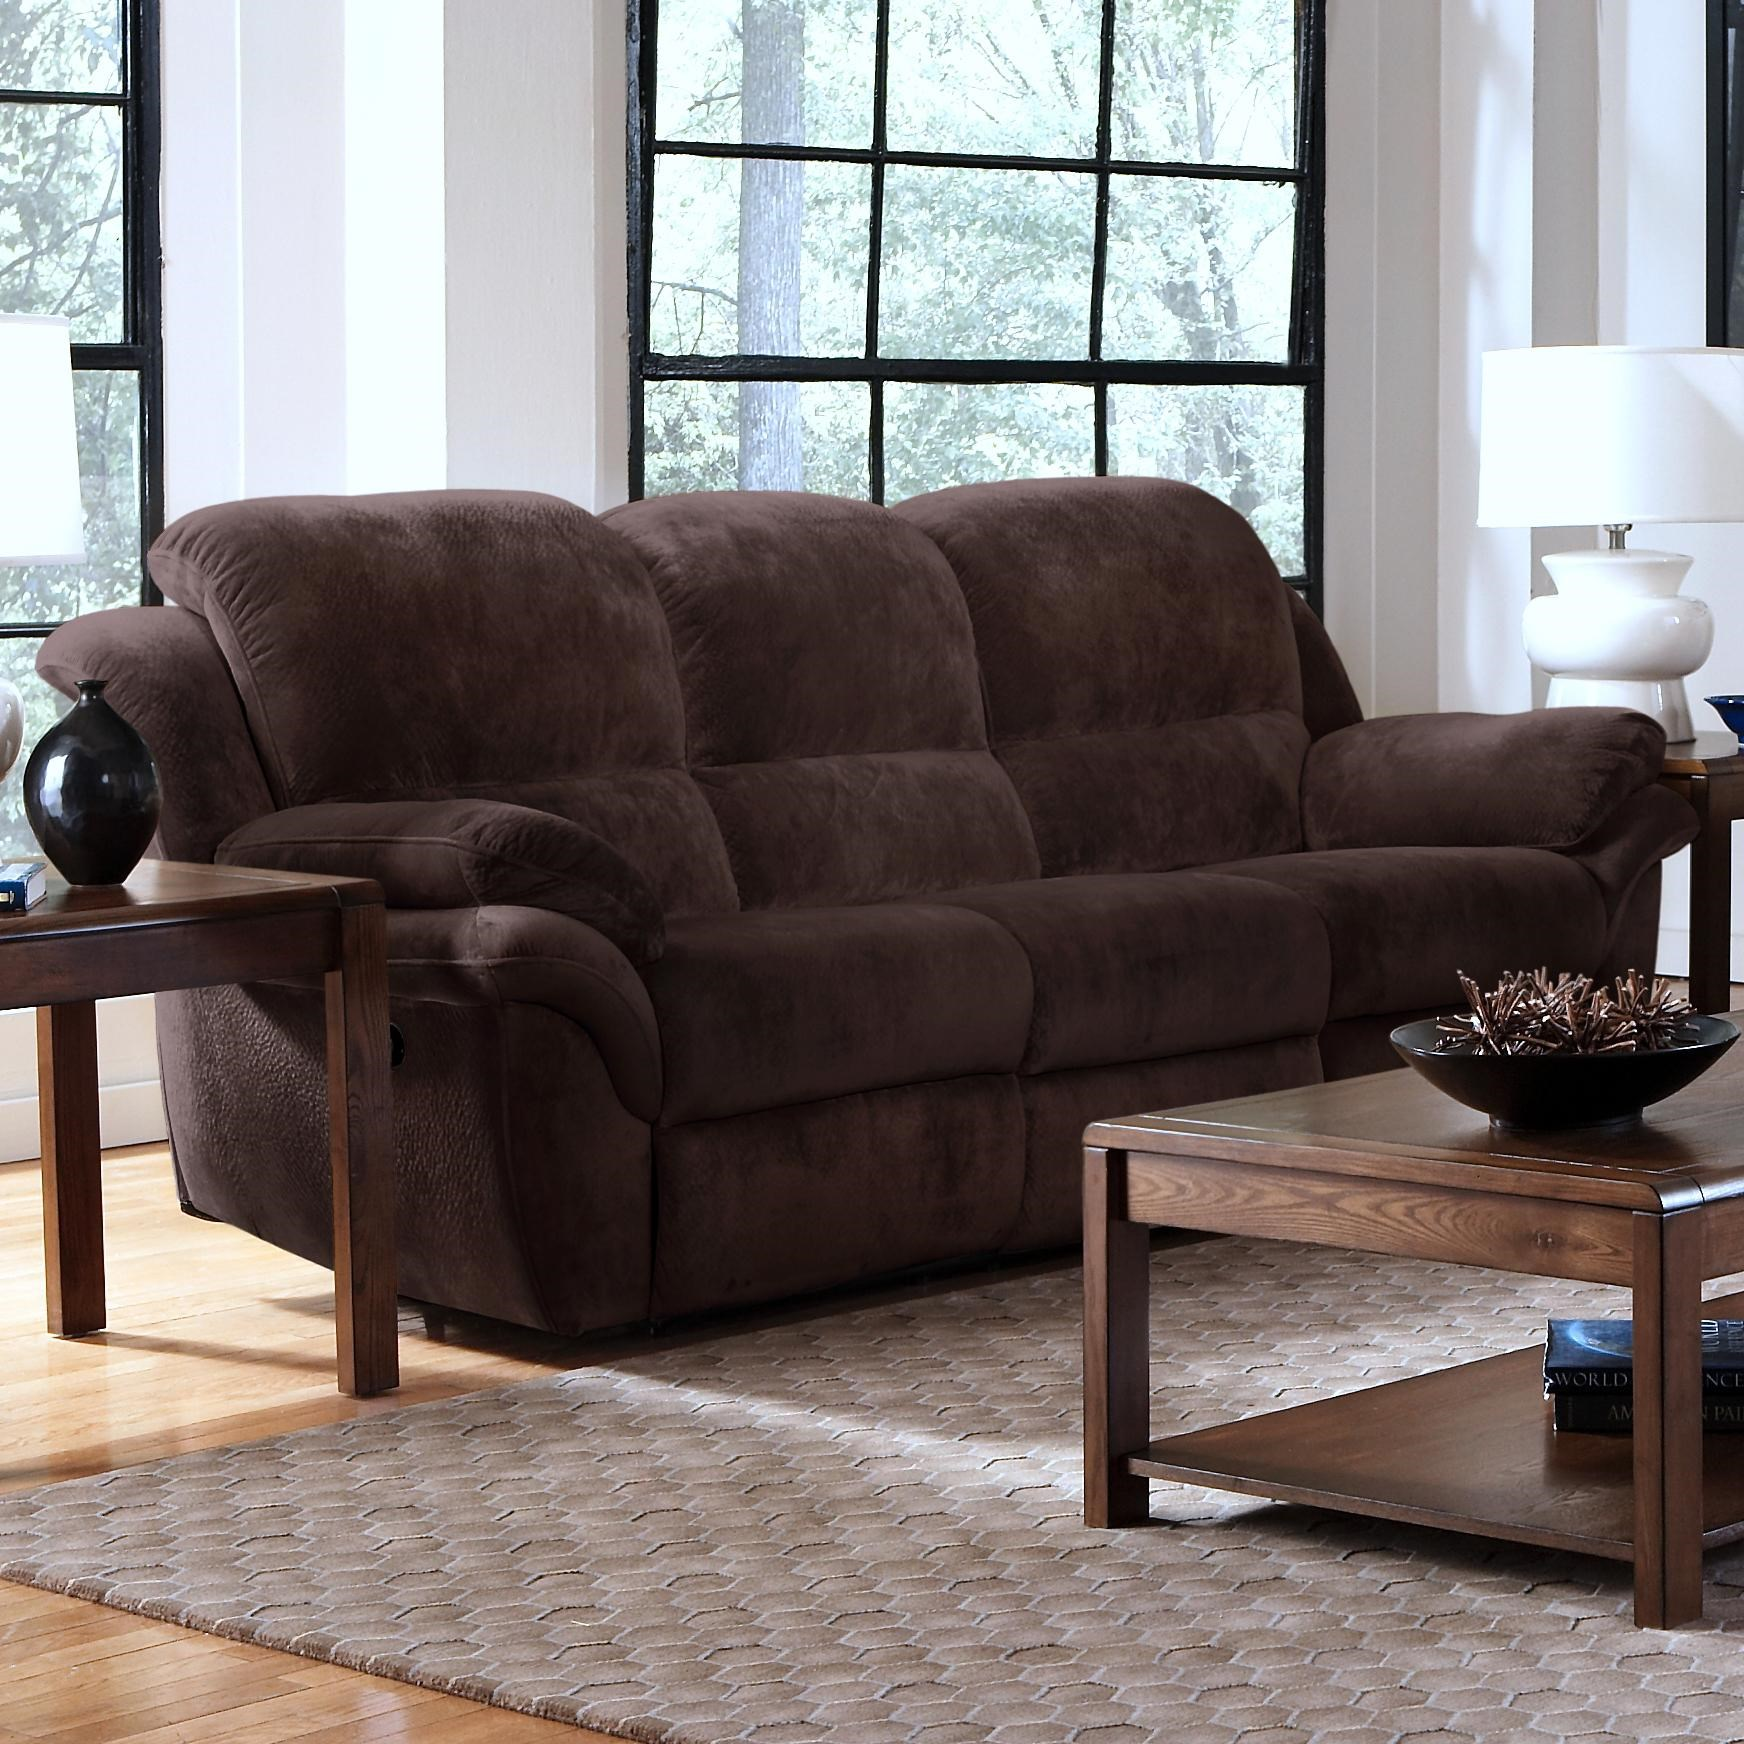 New Classic Pebble Dual Recliner Motion Sofa